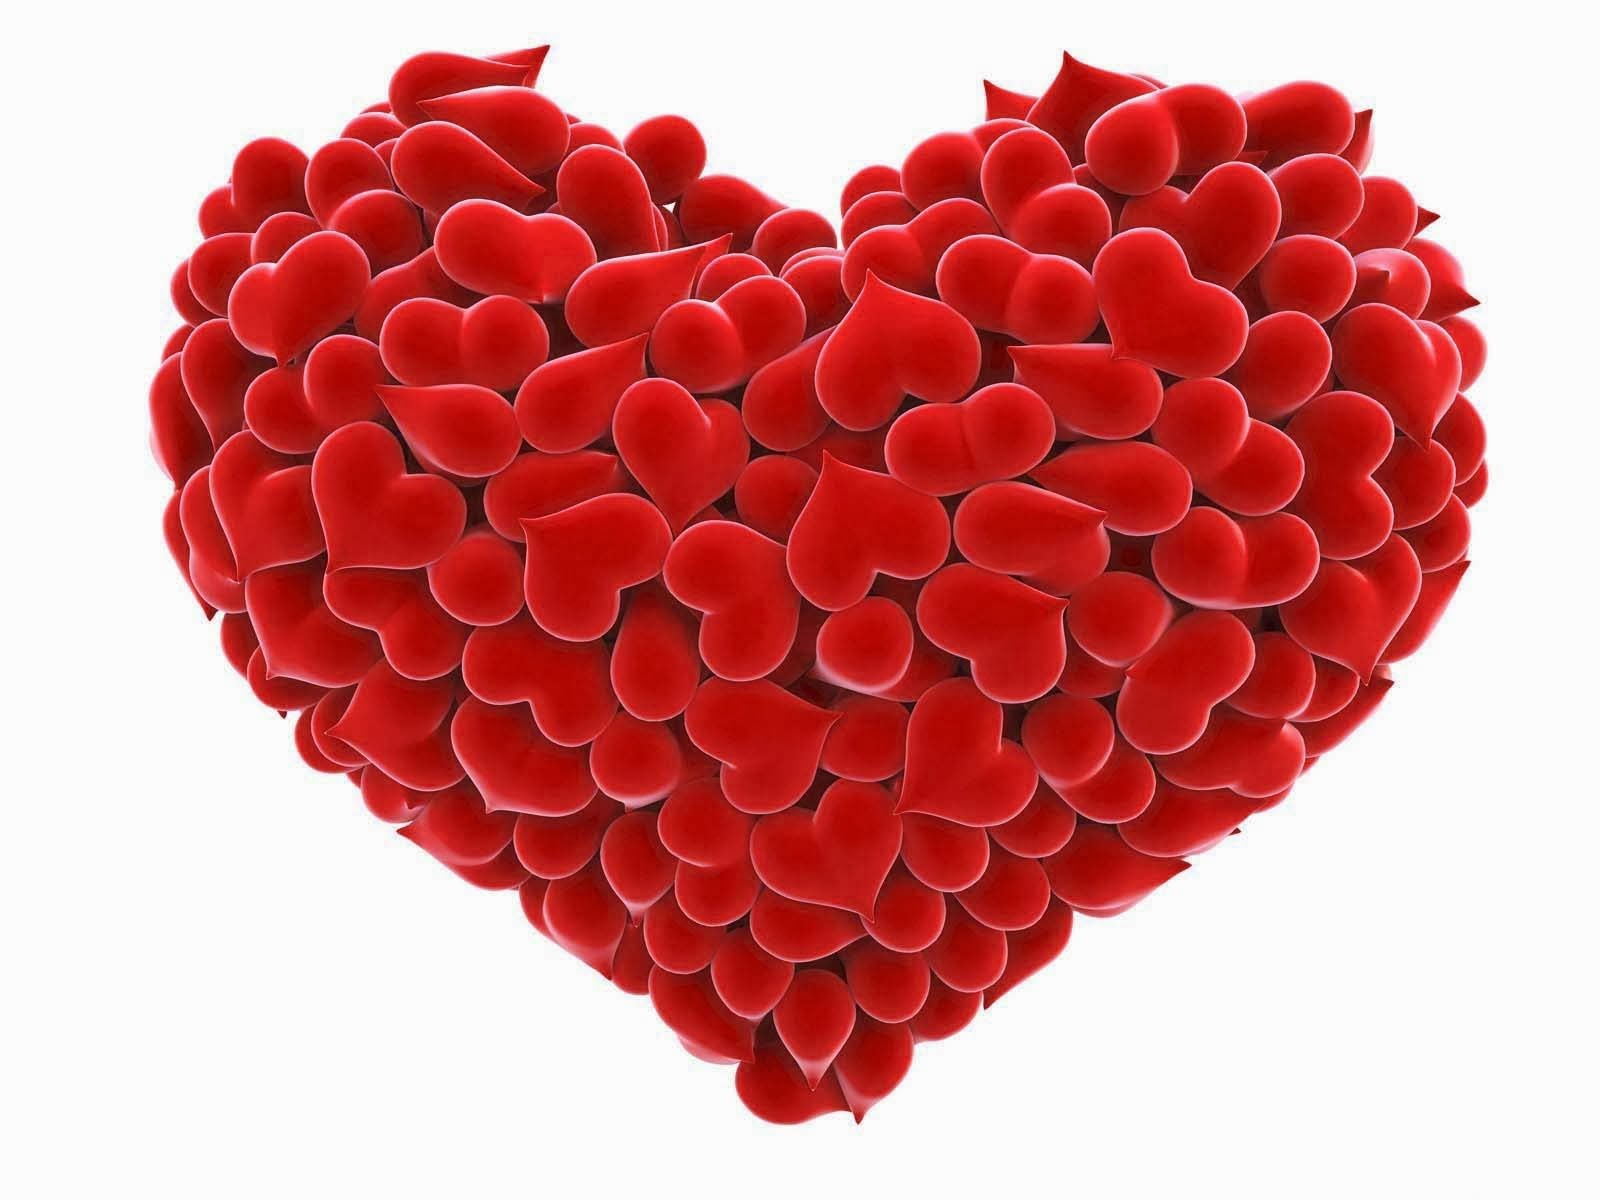 heart-love-red-color-wallpaper